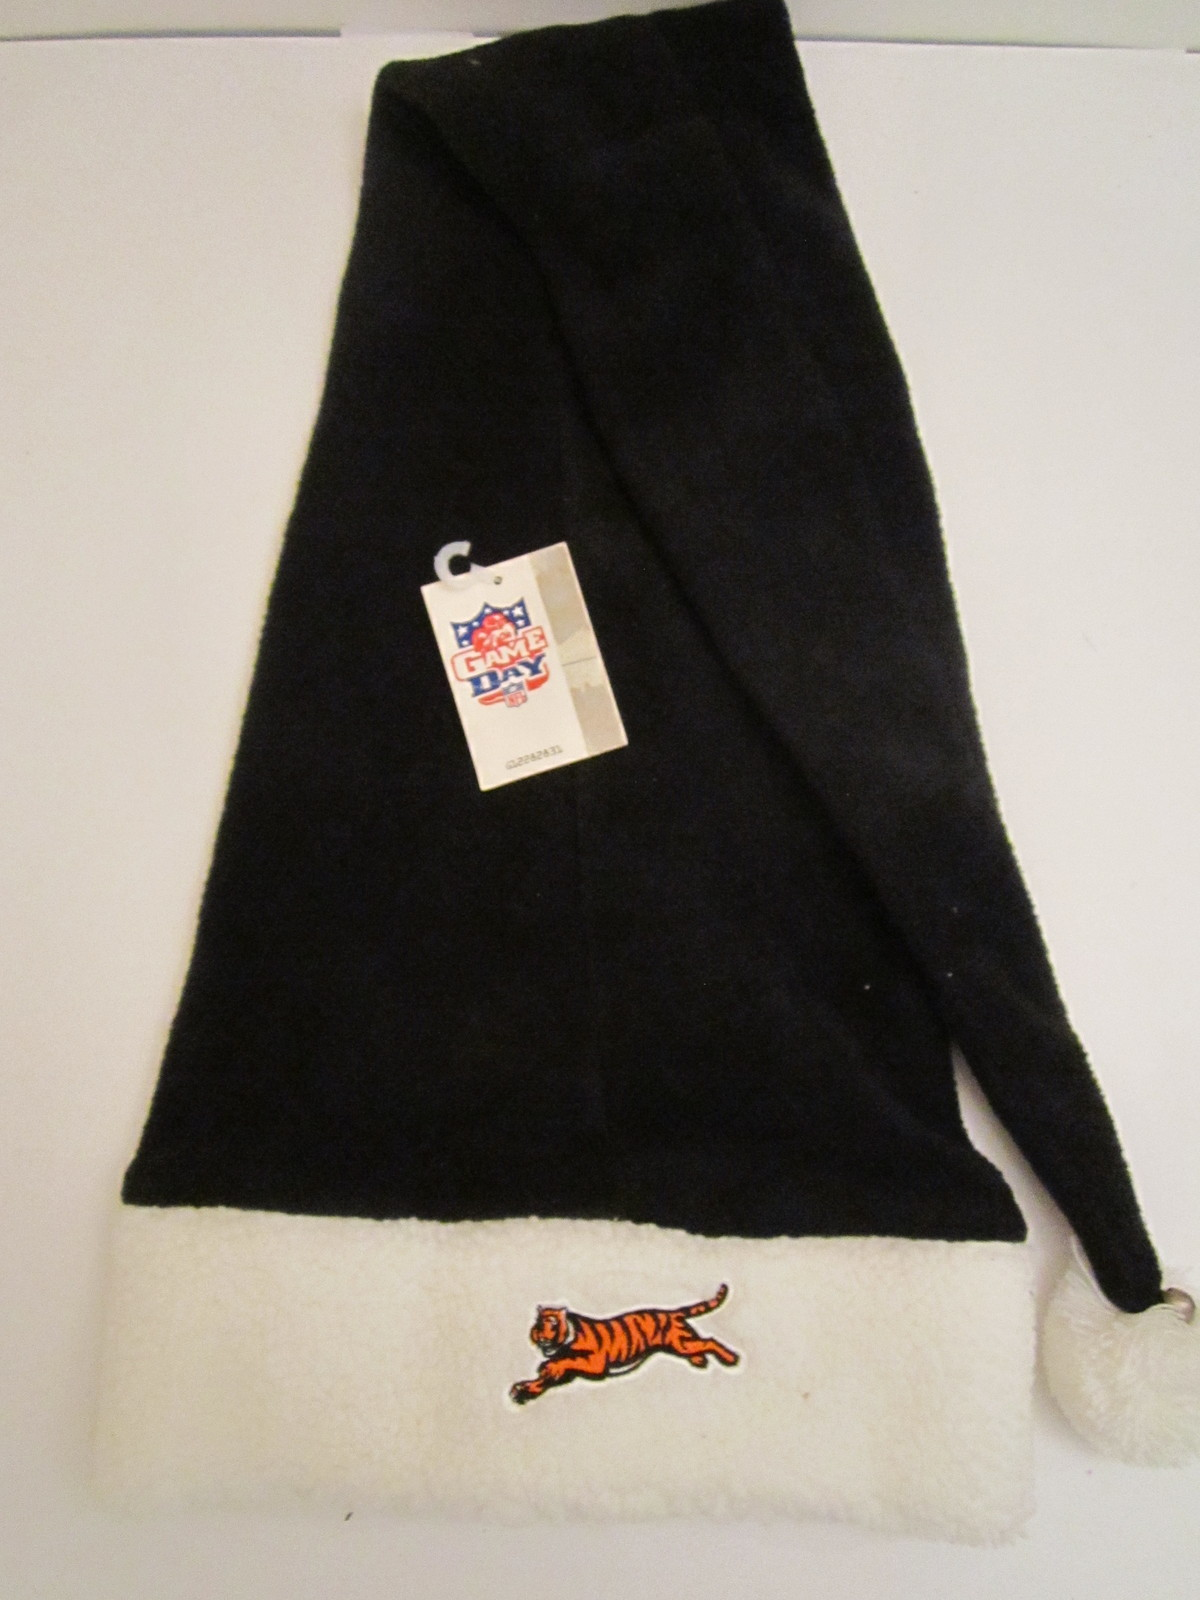 Primary image for Vintage NFL Cincinnati Bengals Cuffed Fleece Stocking Cap w/Bell (New) by DPM